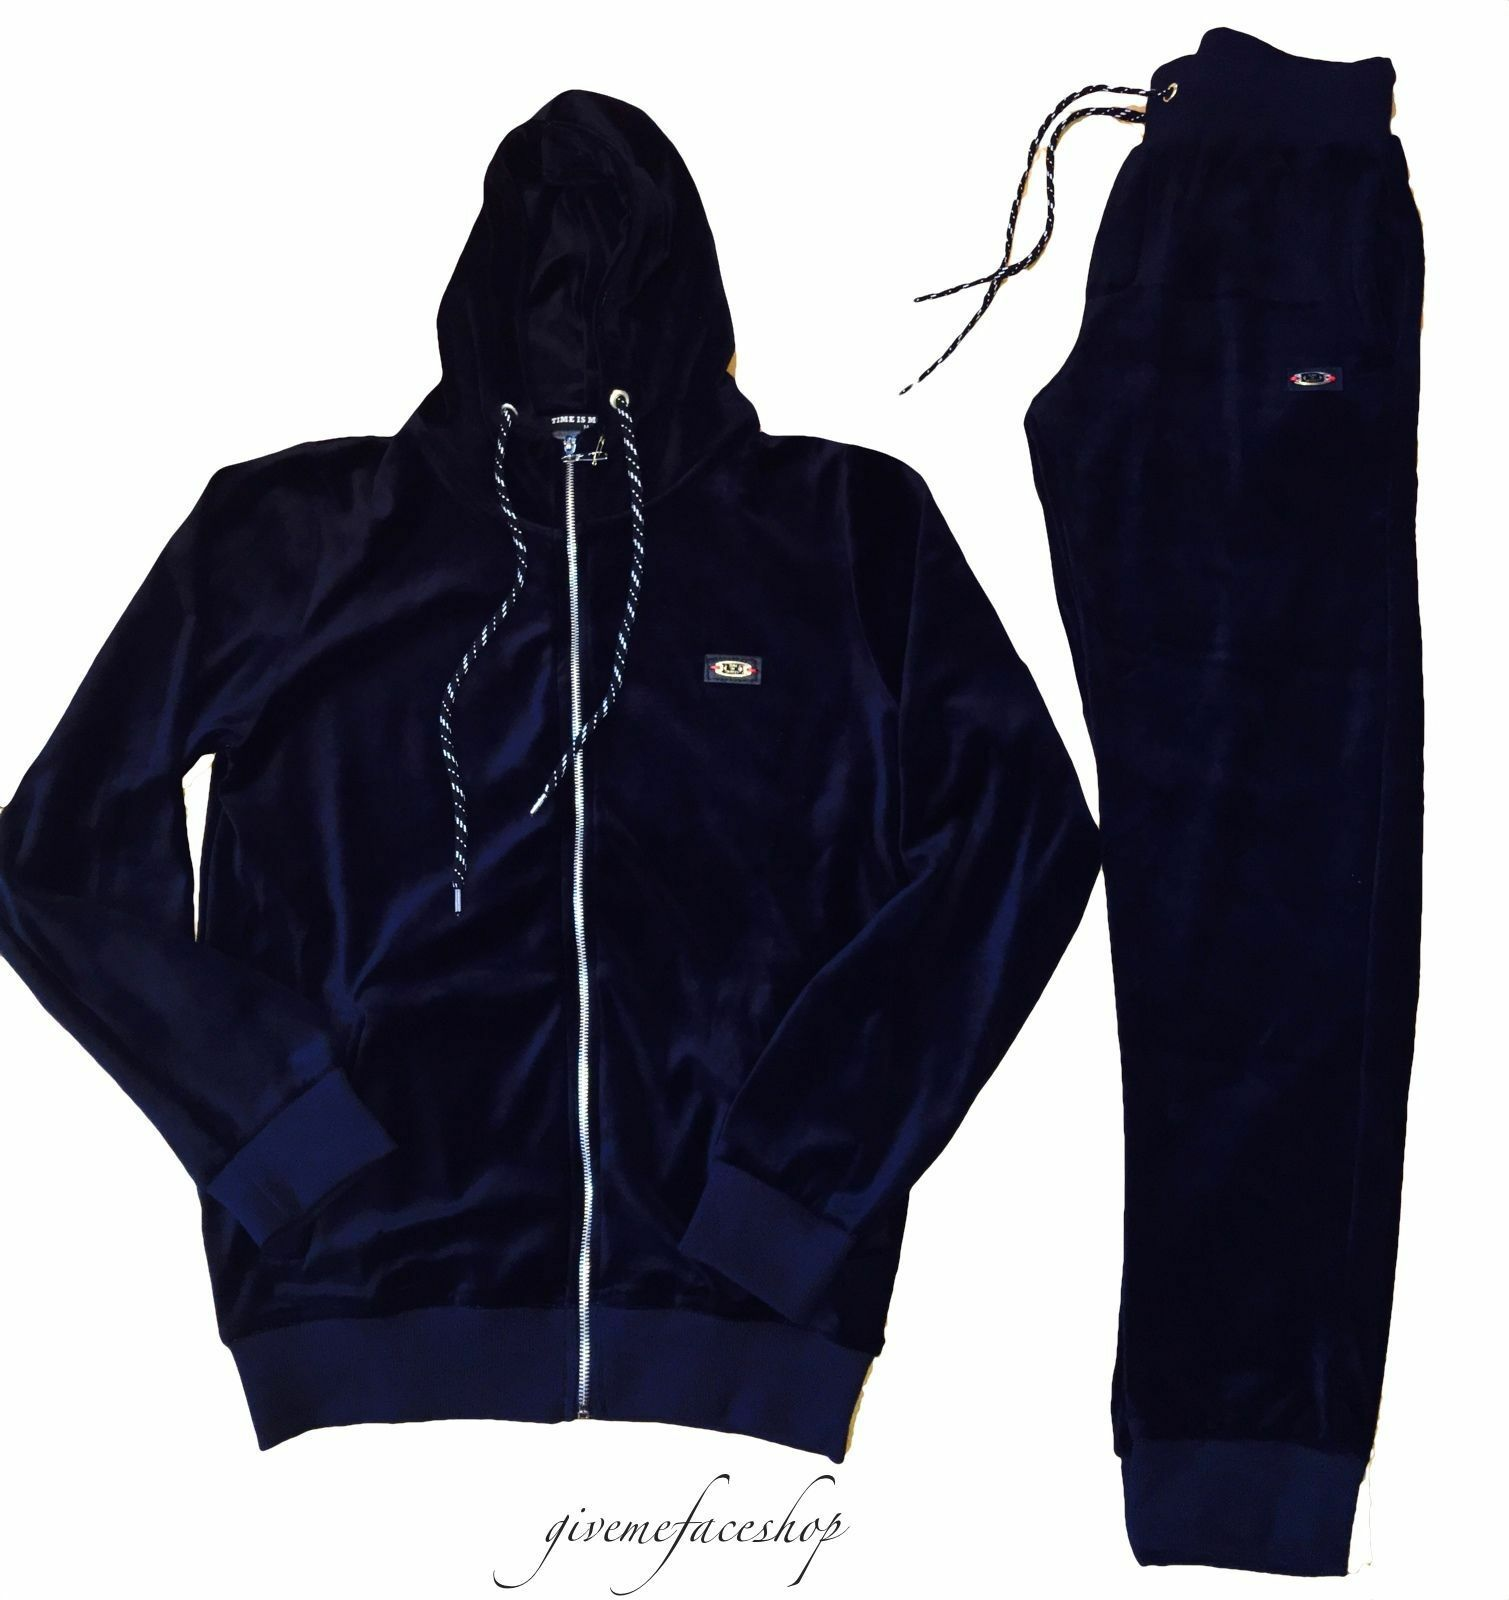 Time Is Money Velluto Jogging Set, Star Hip Hop Tuta Tuta Tuta da Uomo Slim Navy Blu 31189e